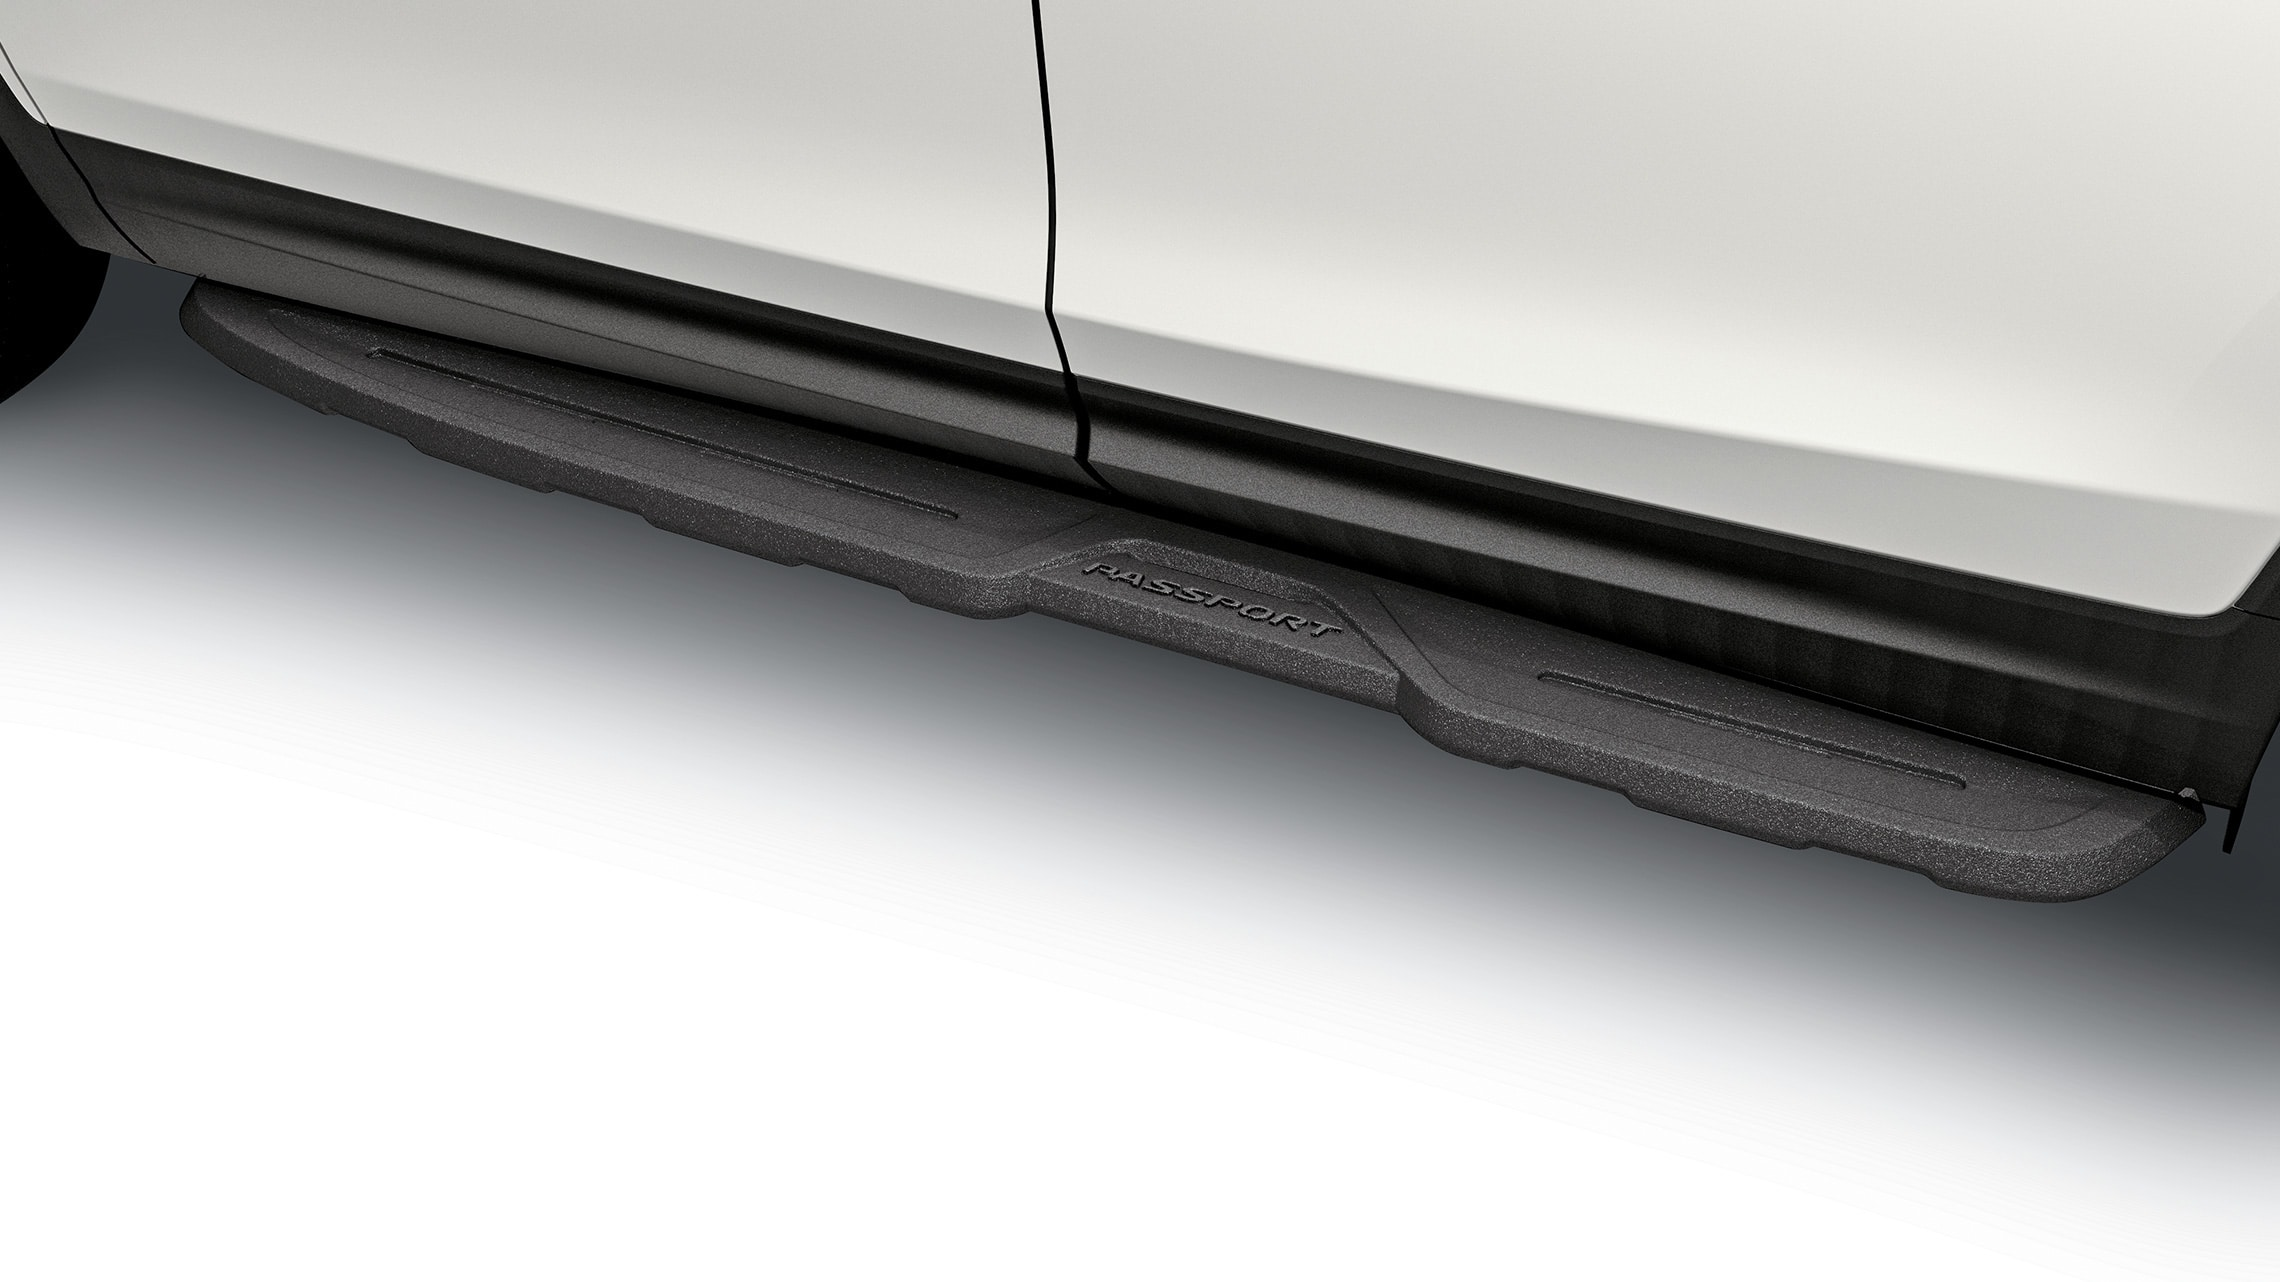 Detail of accessory die-cast running board on the 2021 Honda Passport.